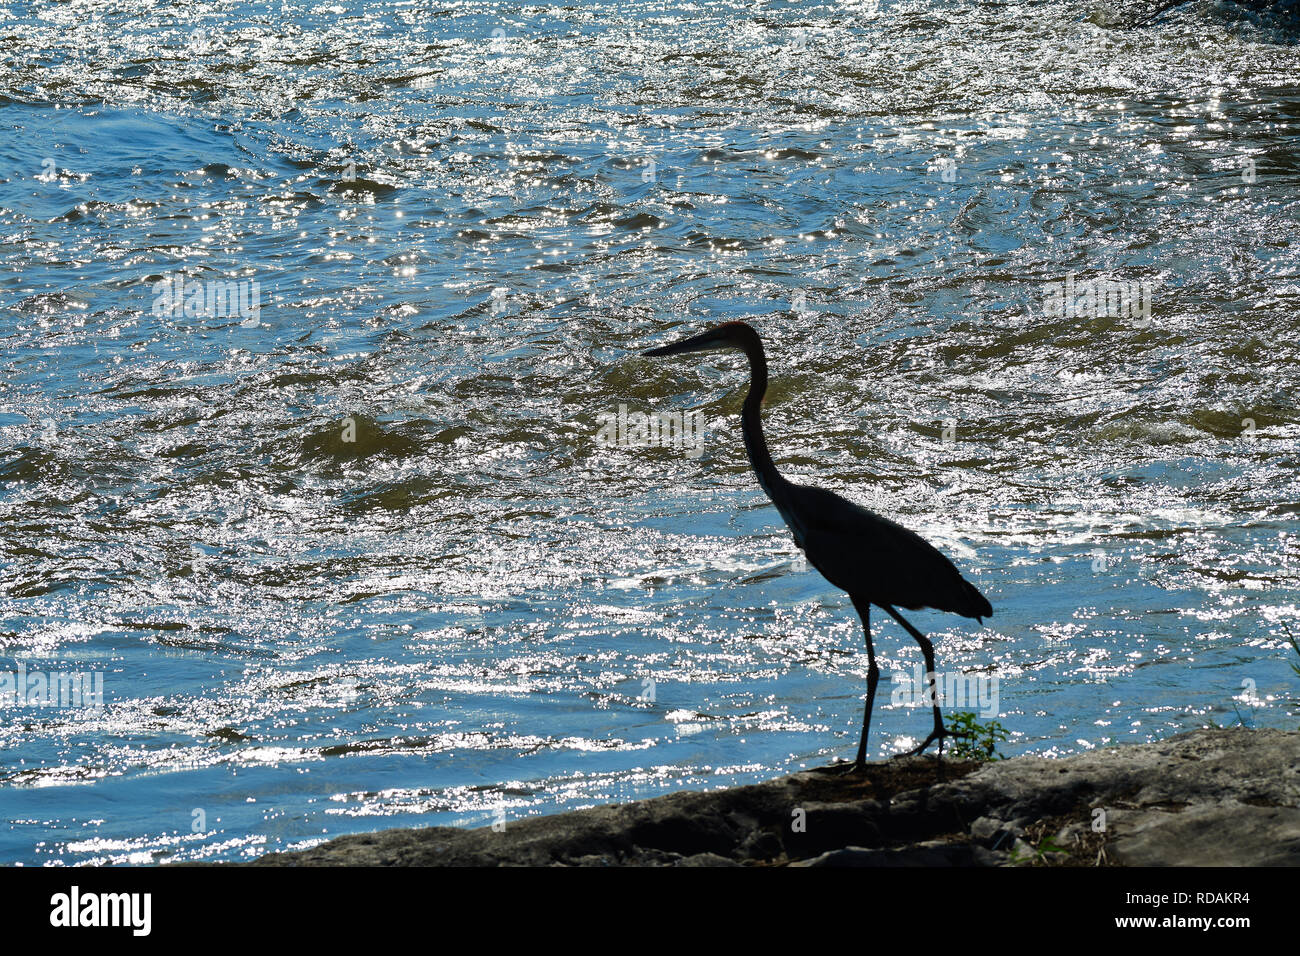 Silhouette of Stork in Kruger Sabie River - Stock Image